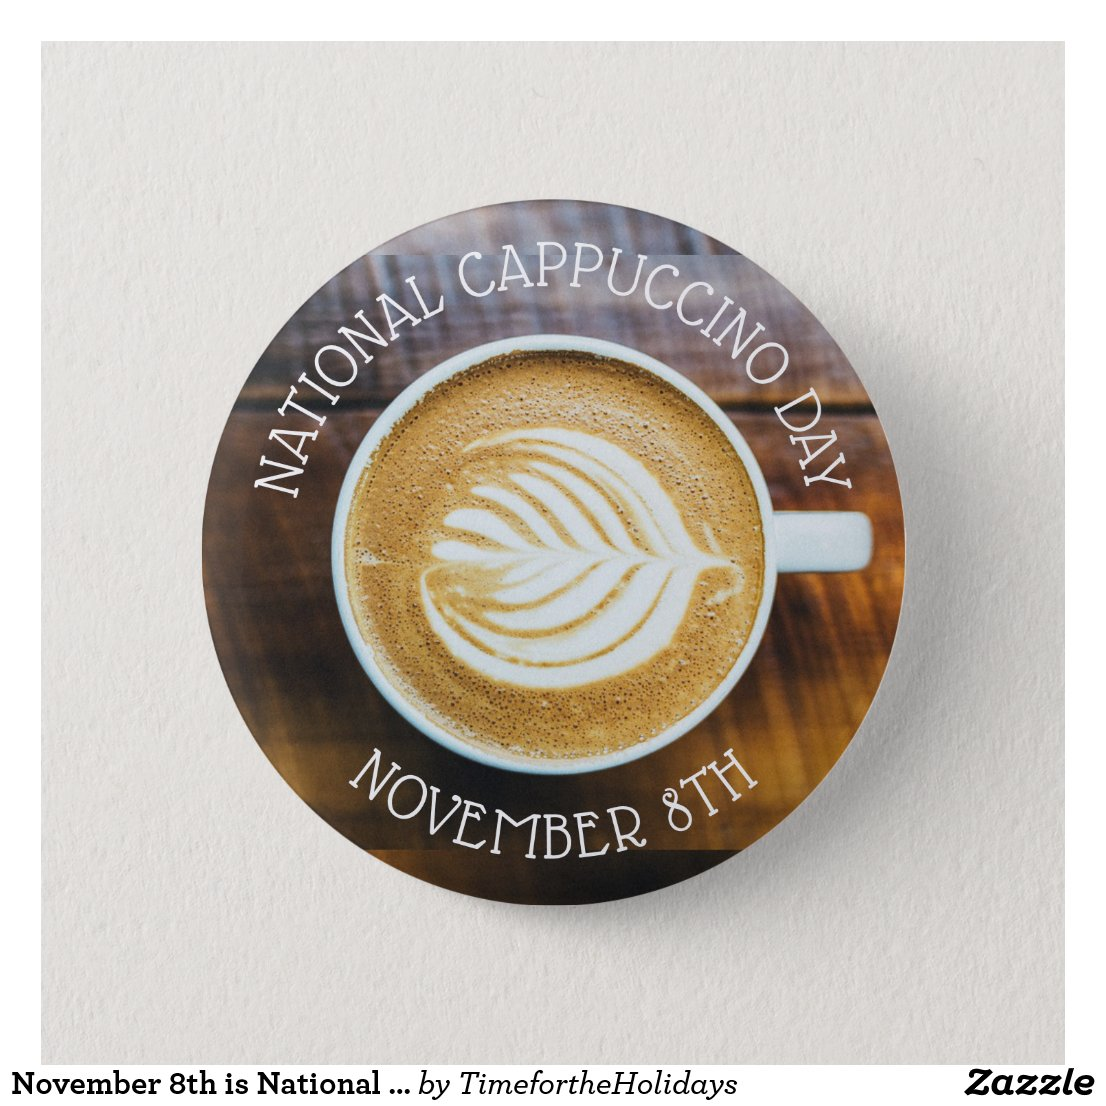 November 8th is National Cappuccino Day